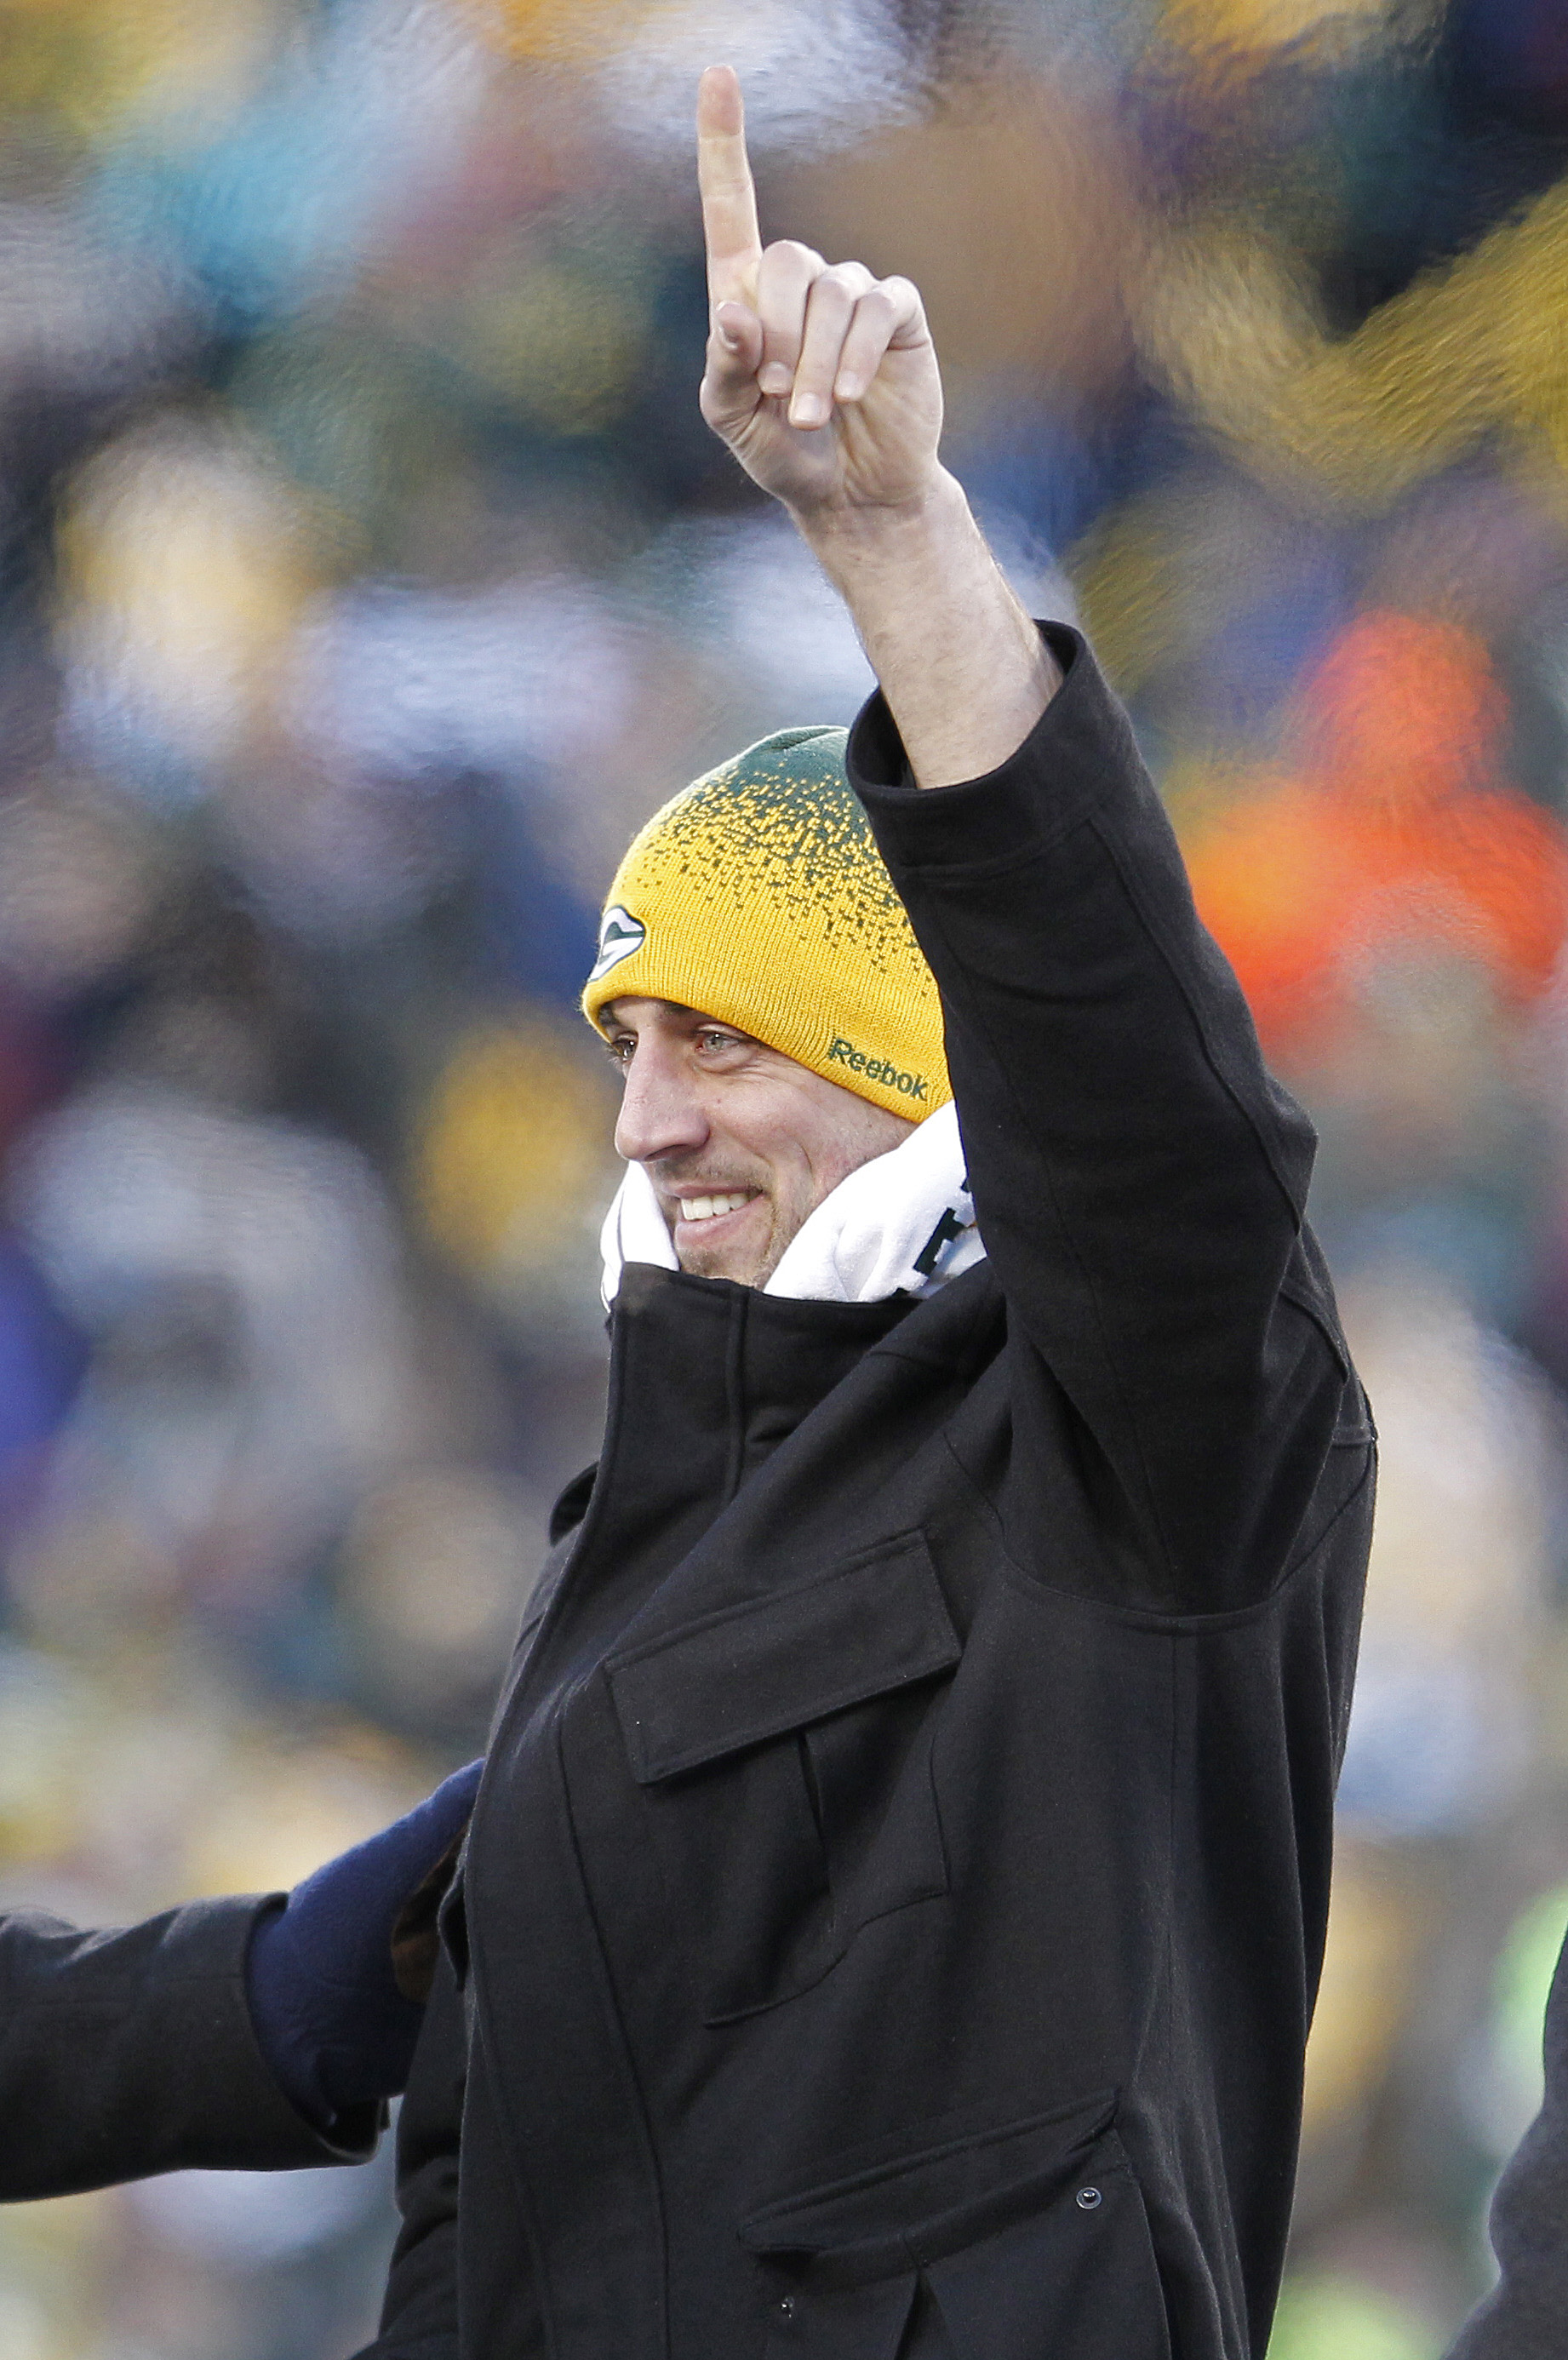 GREEN BAY, WI - FEBRUARY 08:  Green Bay Packers quarterback Aaron Rodgers address fans during the Packers victory ceremony at Lambeau Field on February 8, 2011 in Green Bay, Wisconsin.  (Photo by Matt Ludtke/Getty Images)